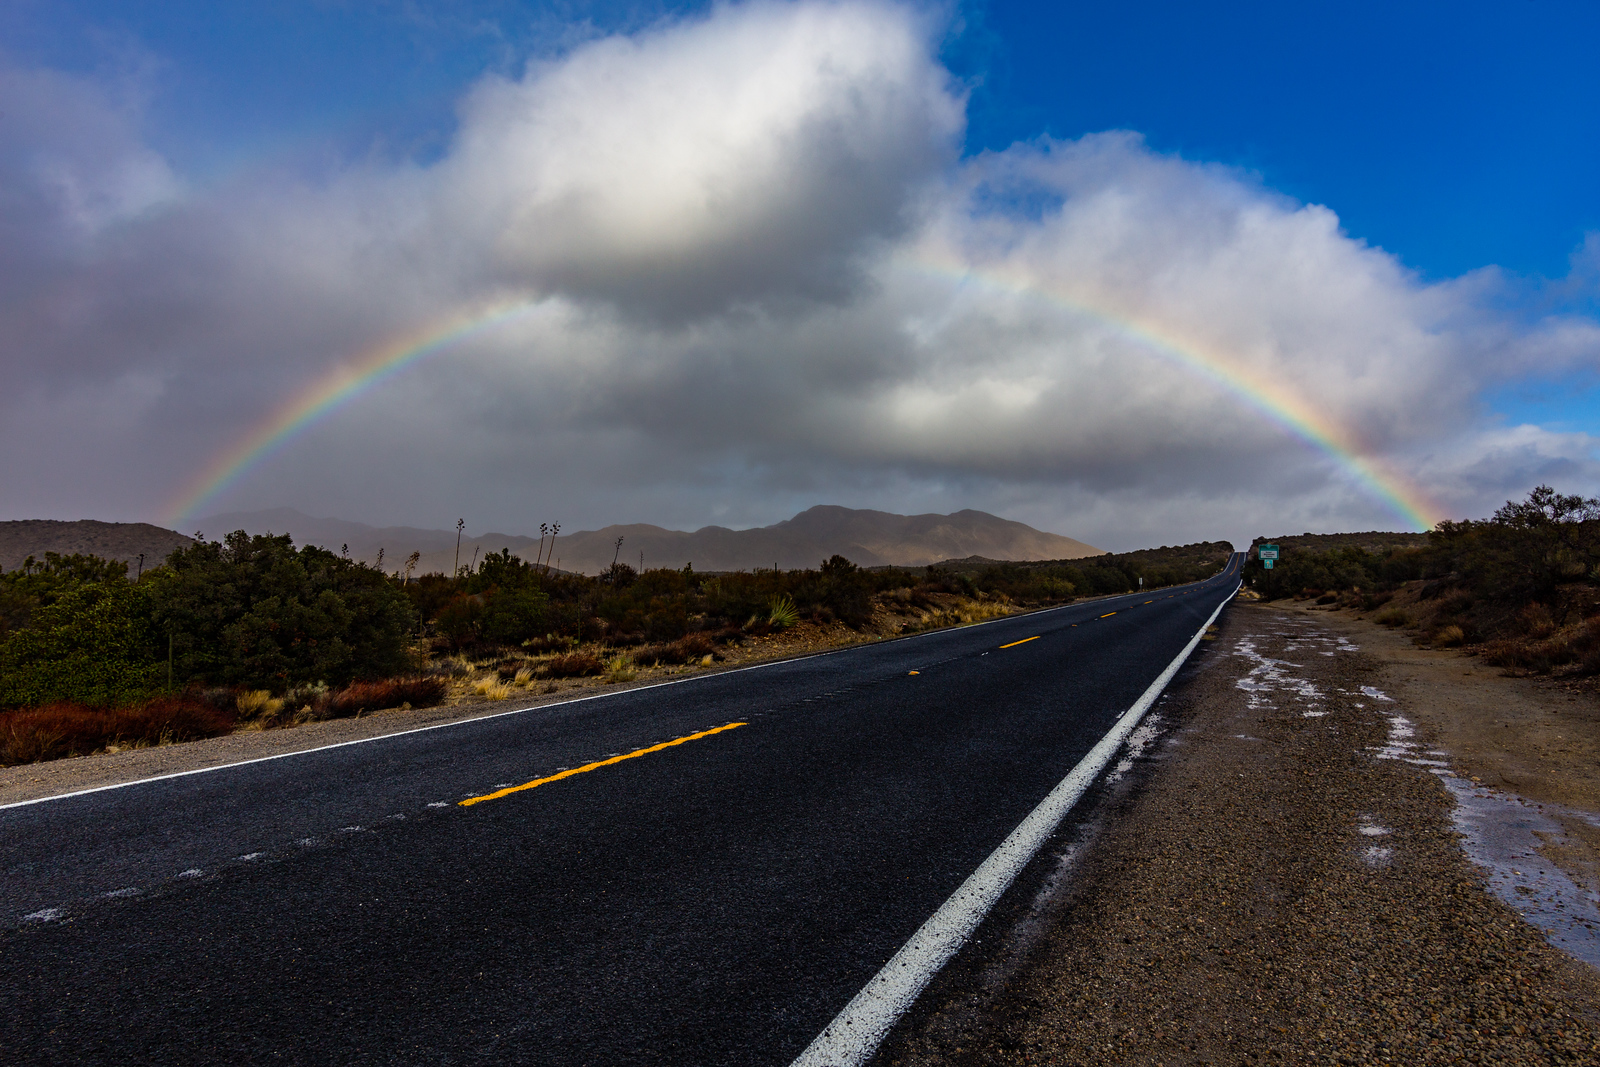 Another shot of a Rainbow over Highway 78 in the Anza-Borrego Desert